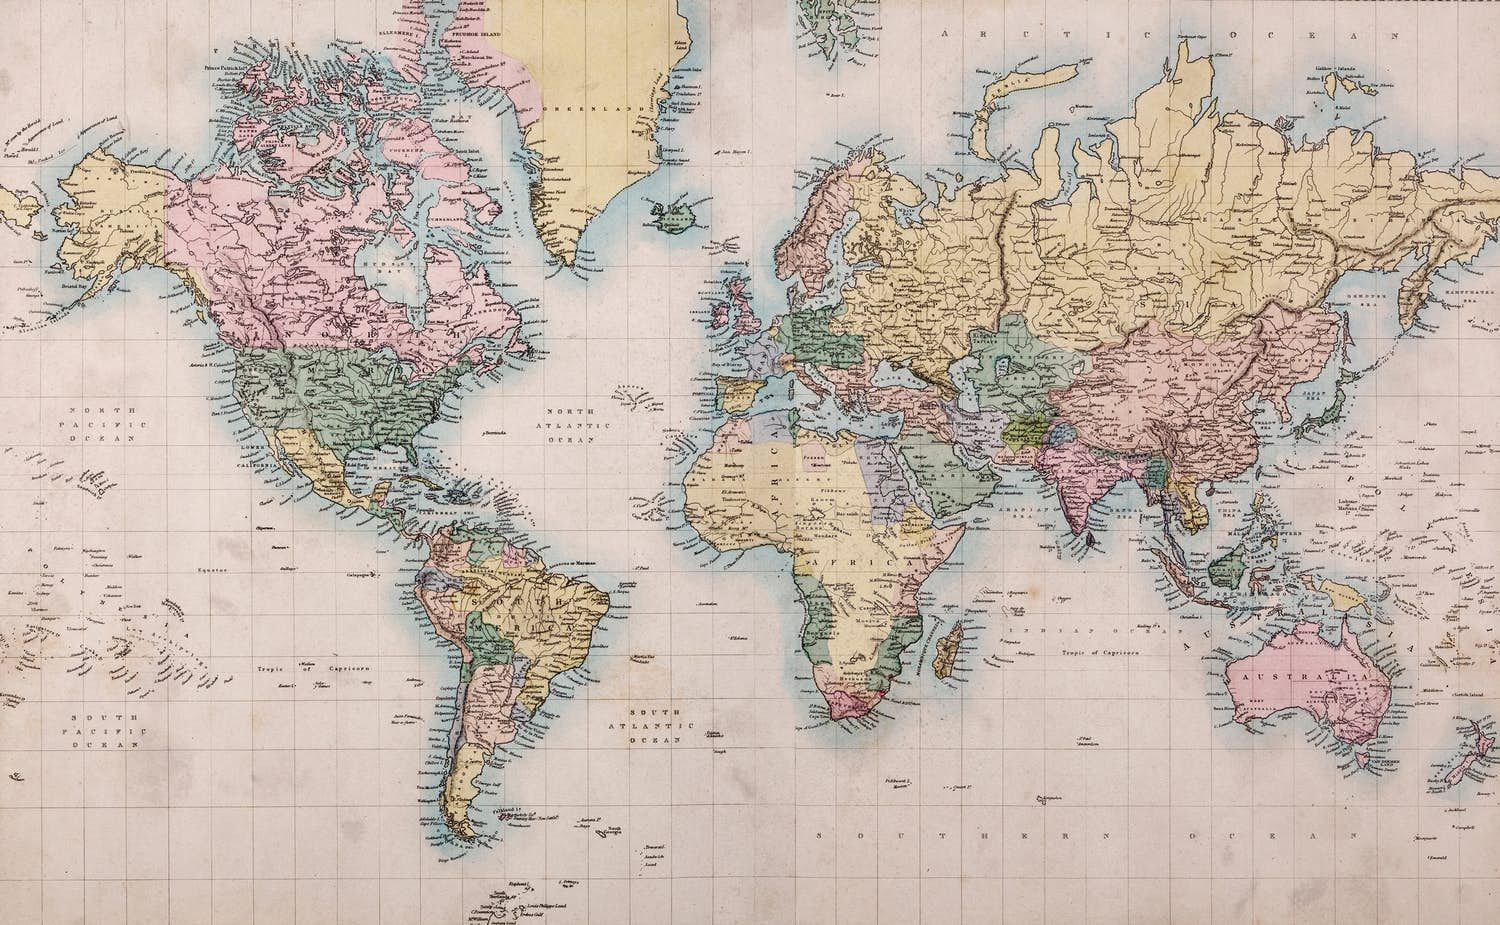 Vintage world map wallpaper from happywall purdue ii vintage world map wallpaper from happywall sciox Images